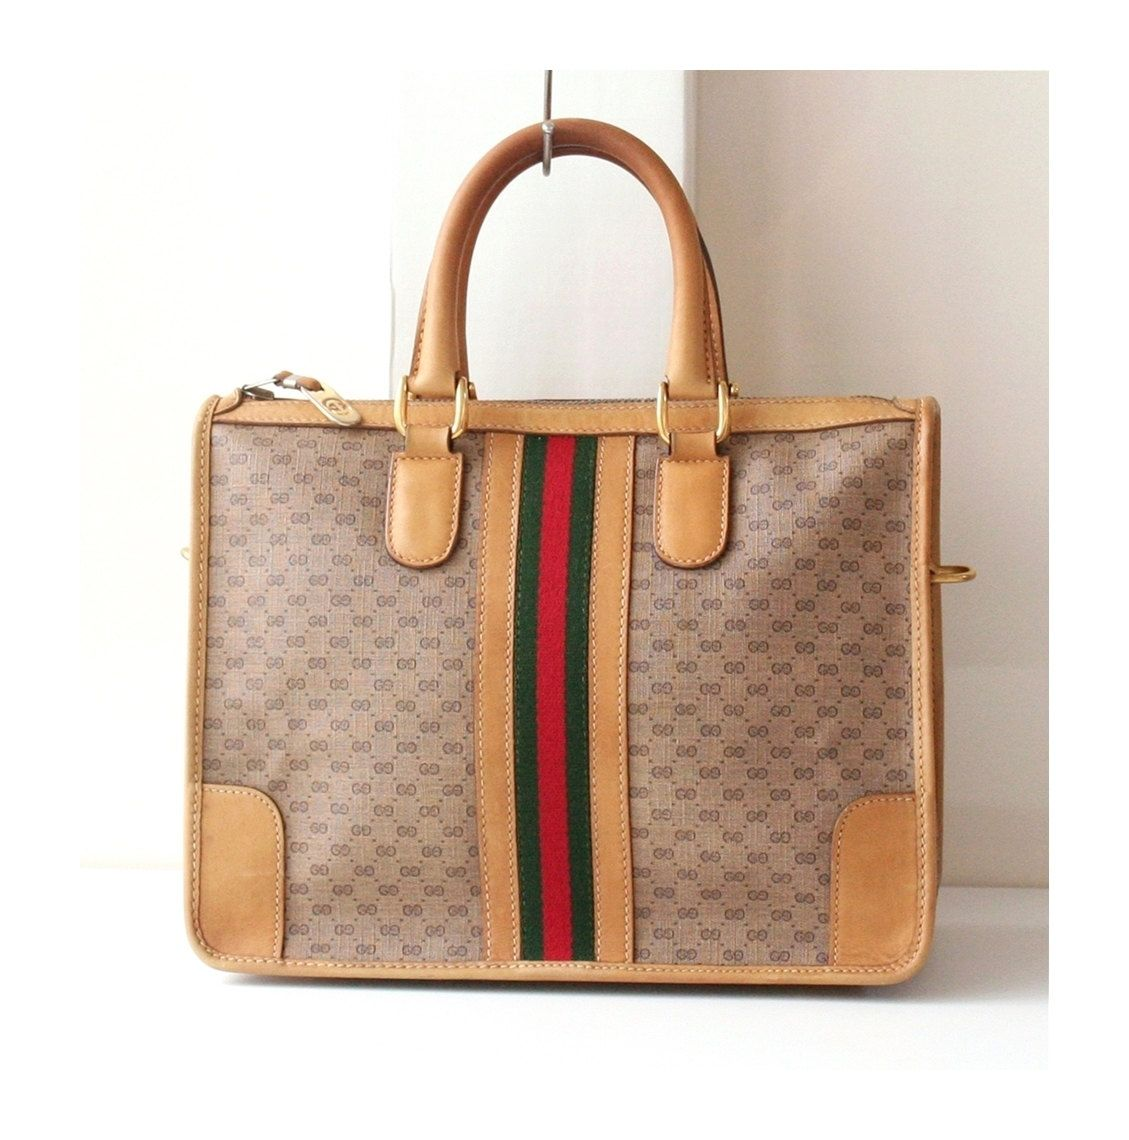 Etsy Vintage Gucci Gucci Vintage Monogram Red Green Tote Authentic Handbag